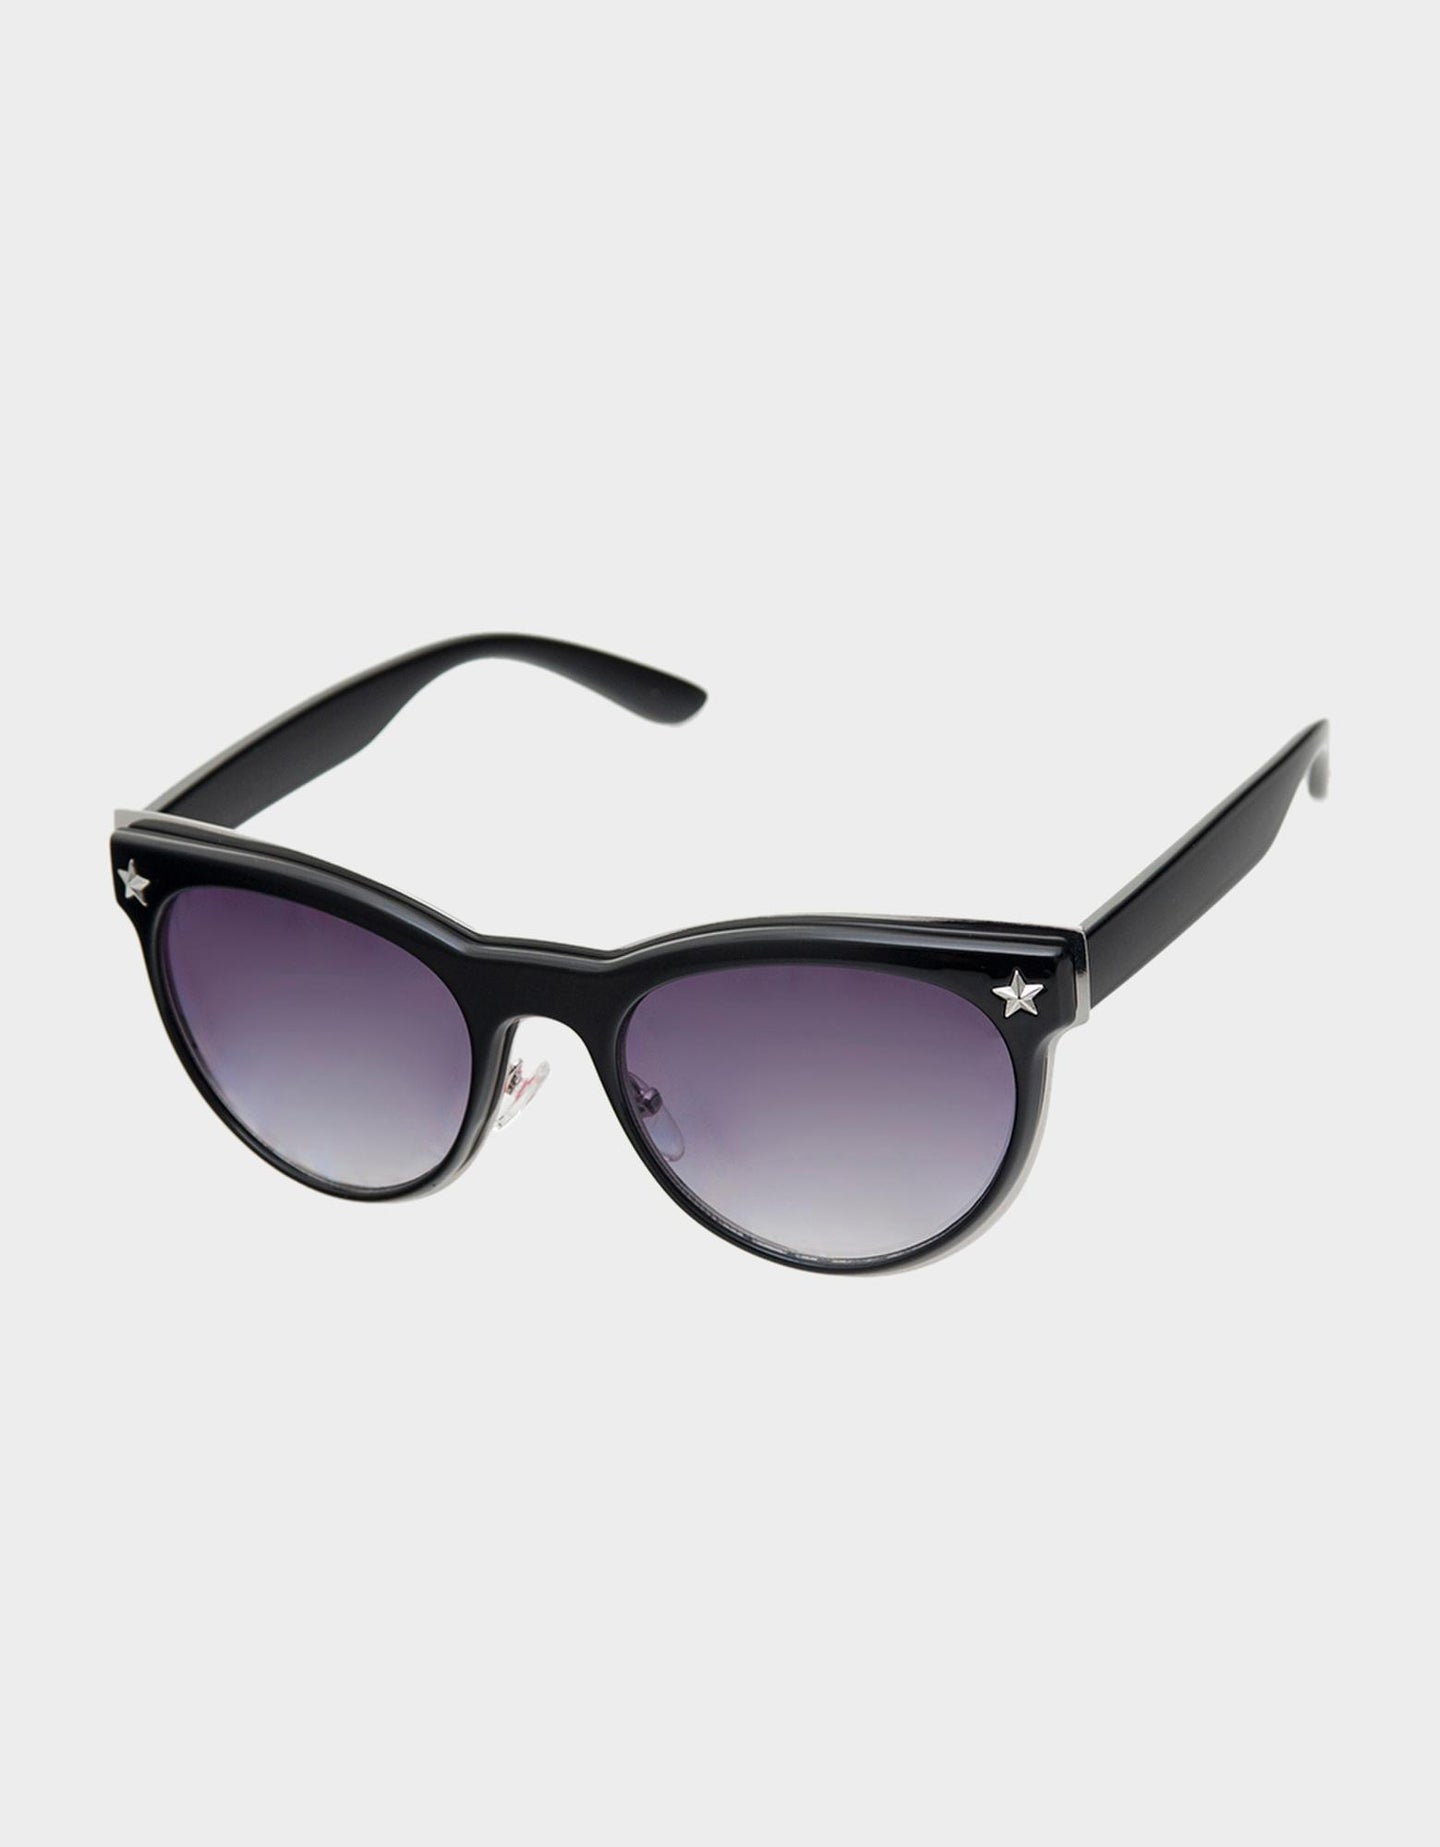 STAR SEARCH SUNGLASSES BLACK - ACCESSORIES - Betsey Johnson